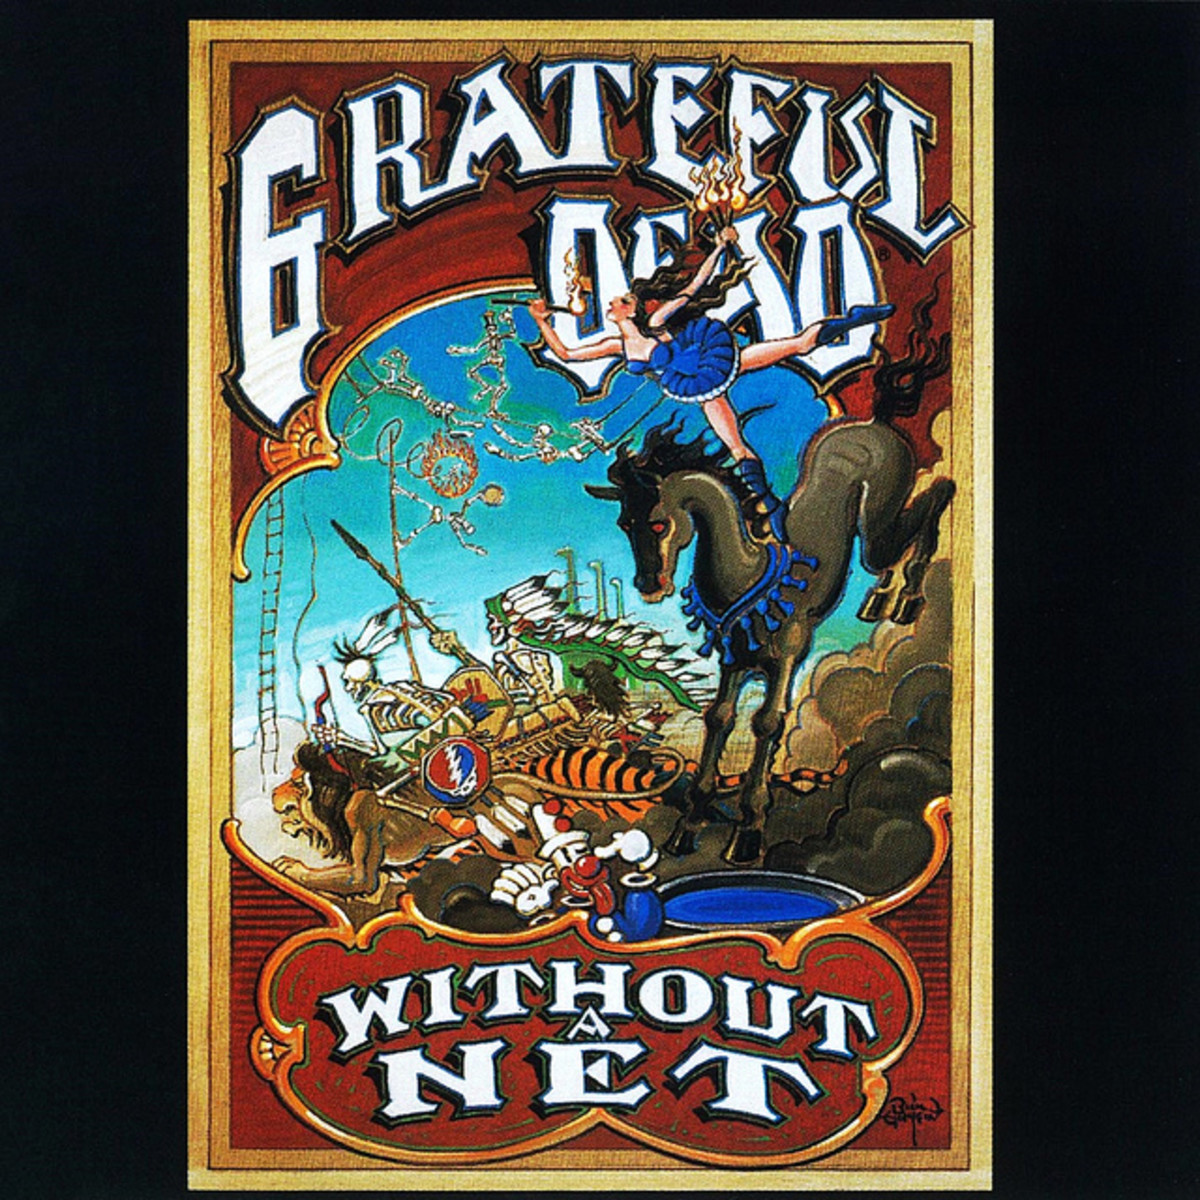 "The Grateful Dead ""Without A Net"" Arista Records AL3-8634 3 12"" :P Vinyl Record Set, US Pressing (1990) Album Cover  Art by Rick Griffin"